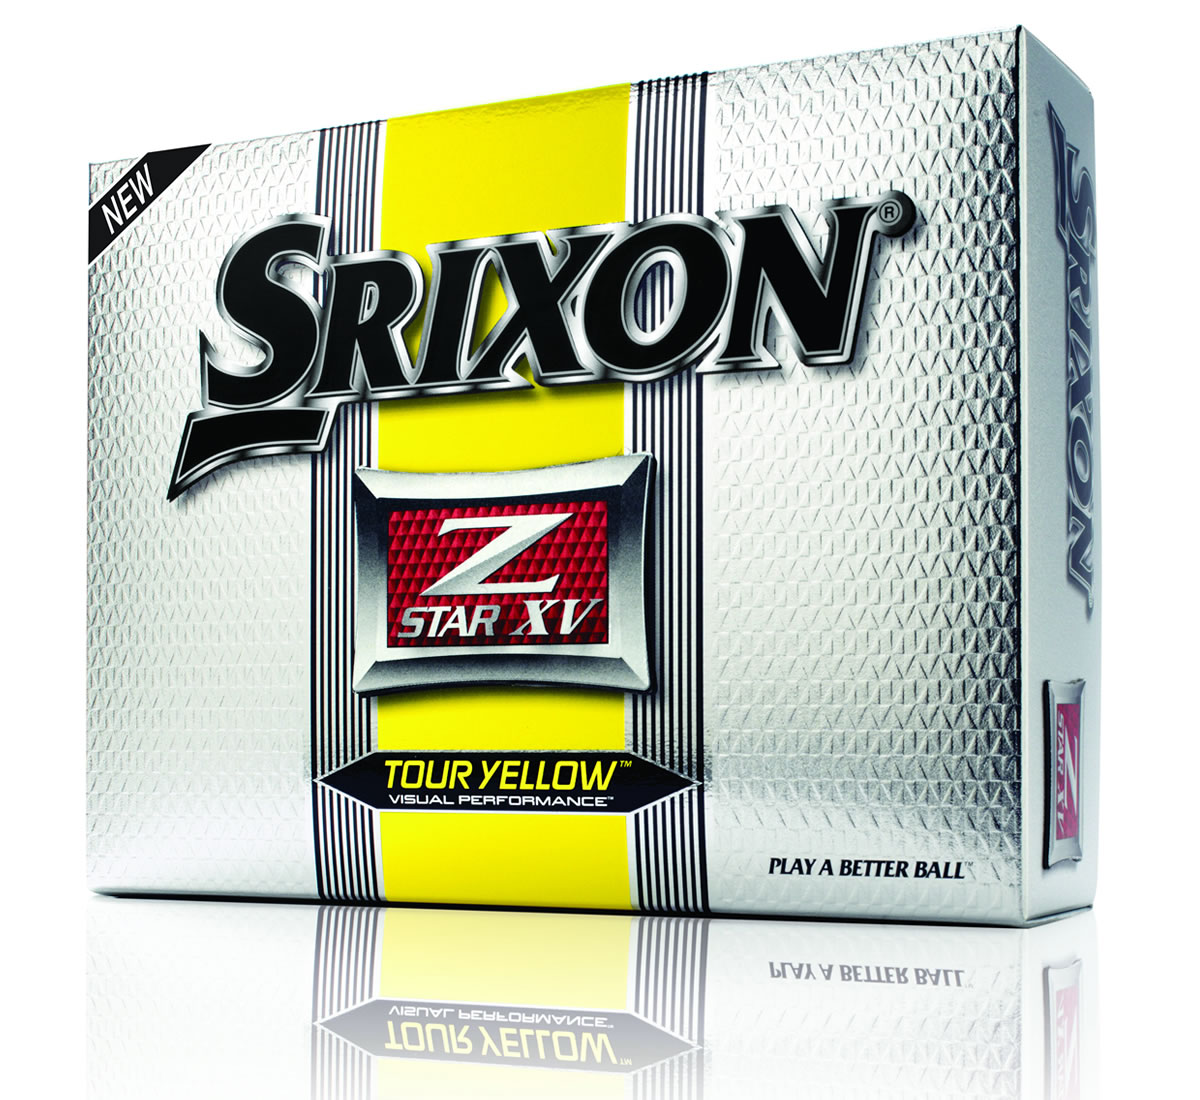 Z-STAR XV Tour Yellow Golf Balls